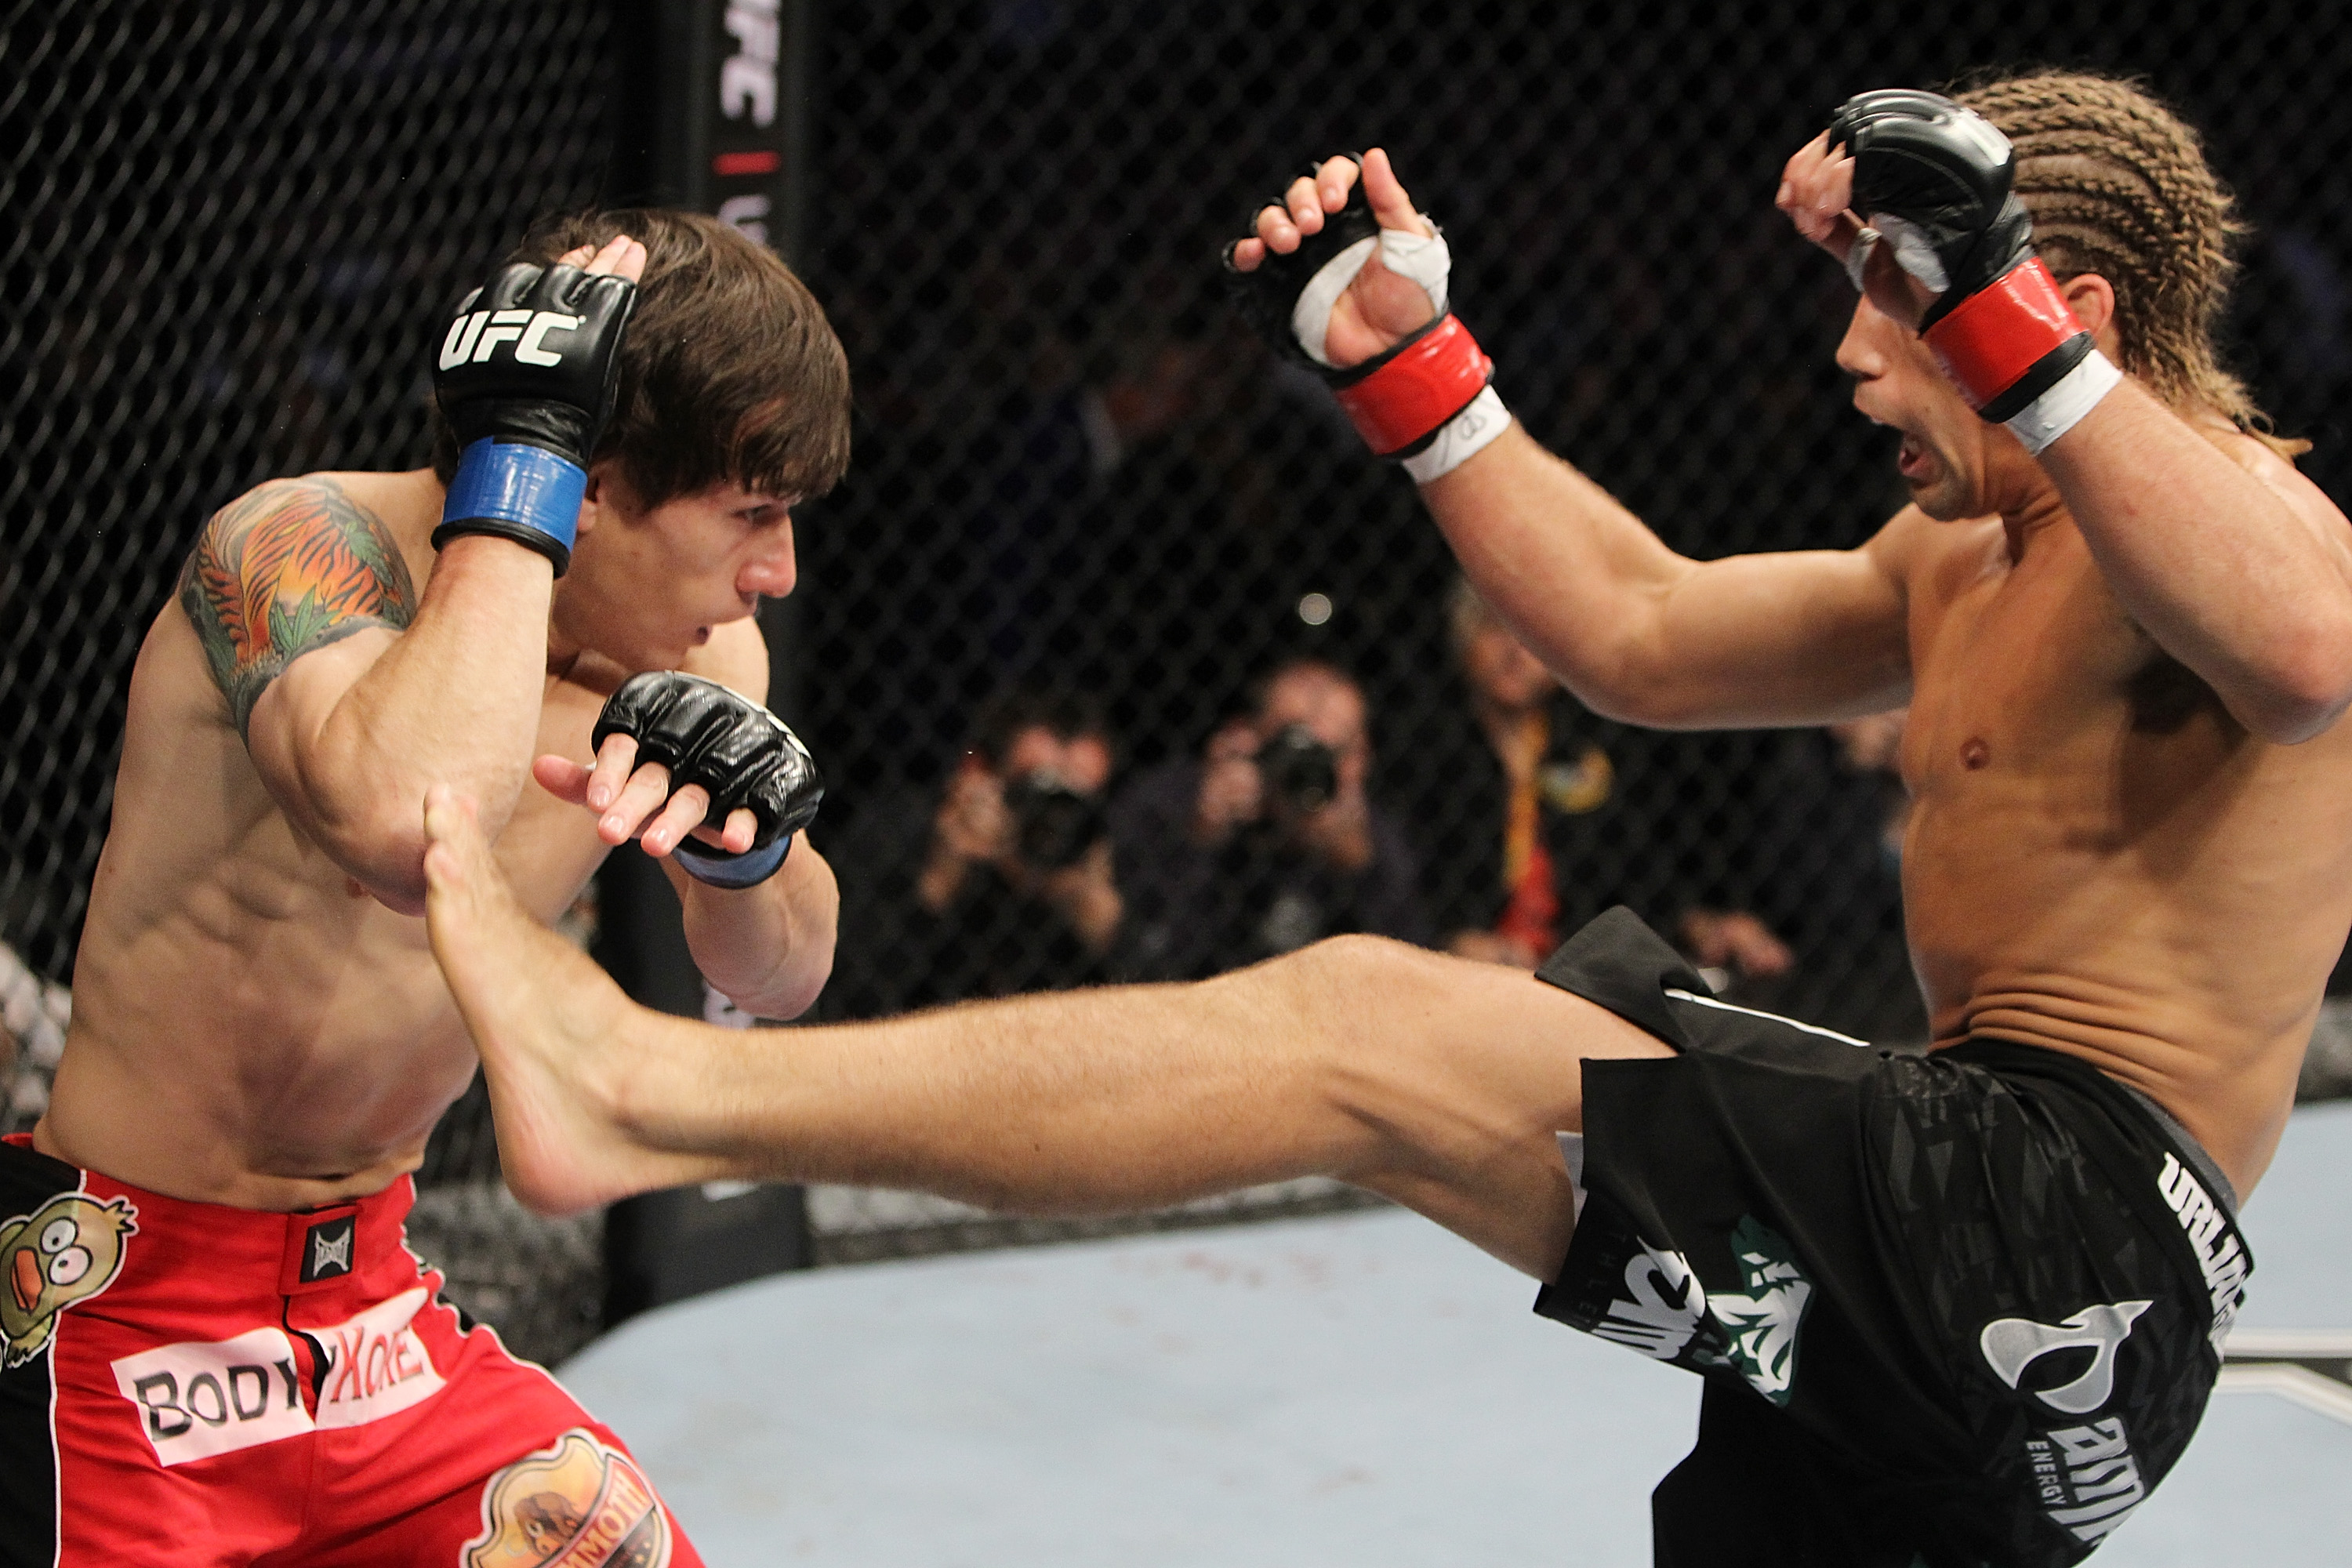 SAN JOSE, CA - NOVEMBER 19: (R-L) Urijah Faber kicks Brian Bowles during an UFC Bantamweight bout at the HP Pavillion on November 19, 2011 in San Jose, California.  (Photo by Josh Hedges/Zuffa LLC/Zuffa LLC via Getty Images)